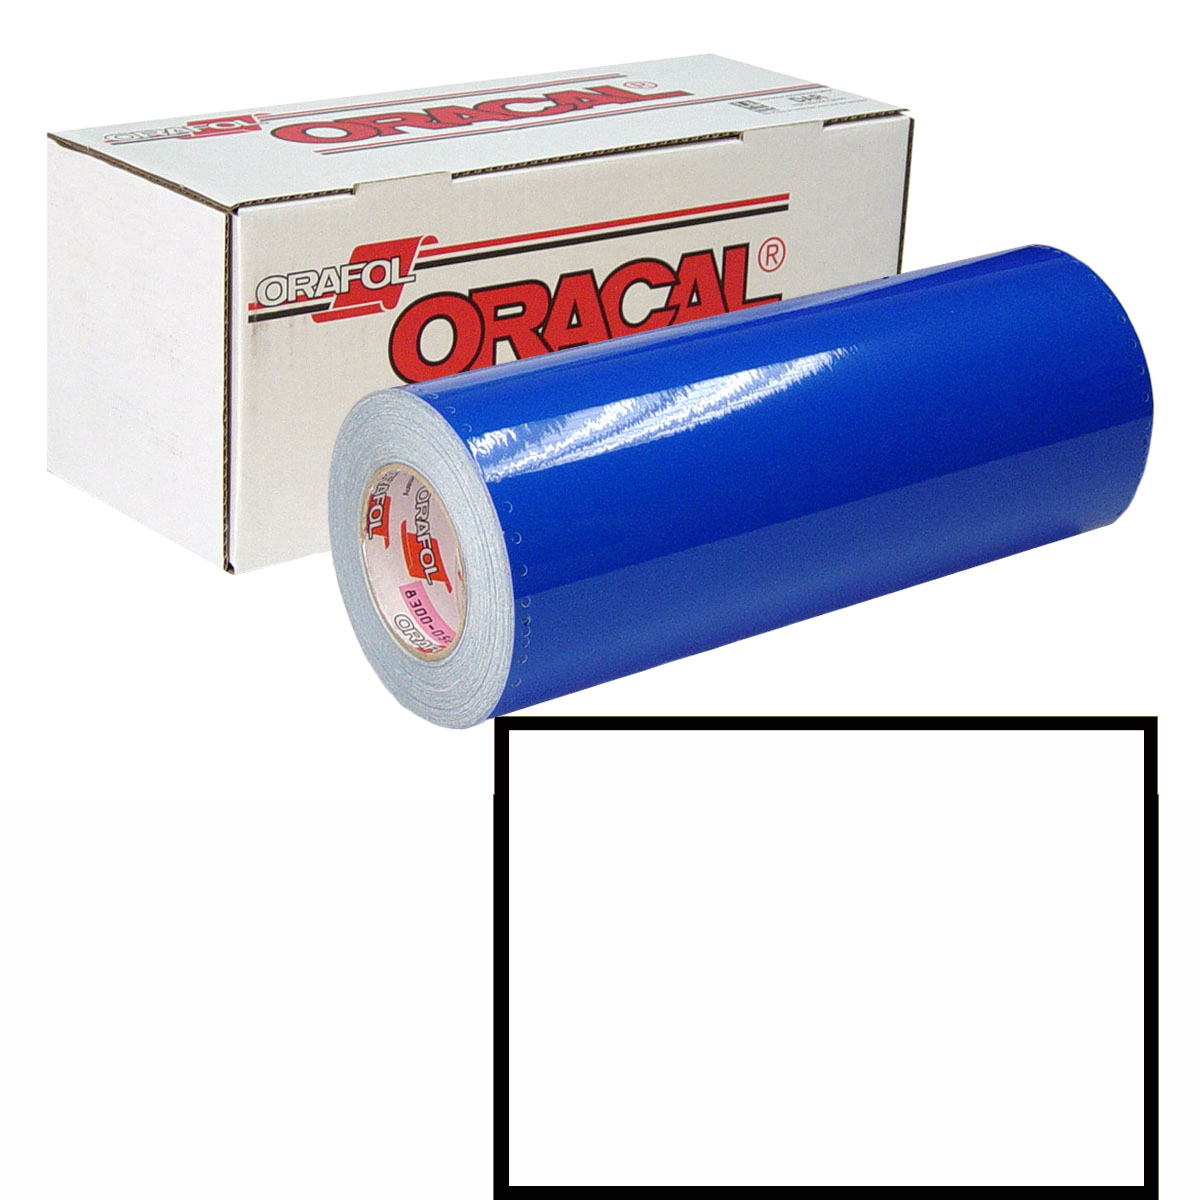 ORACAL 631 Unp 48in X 50yd 000 Transparent